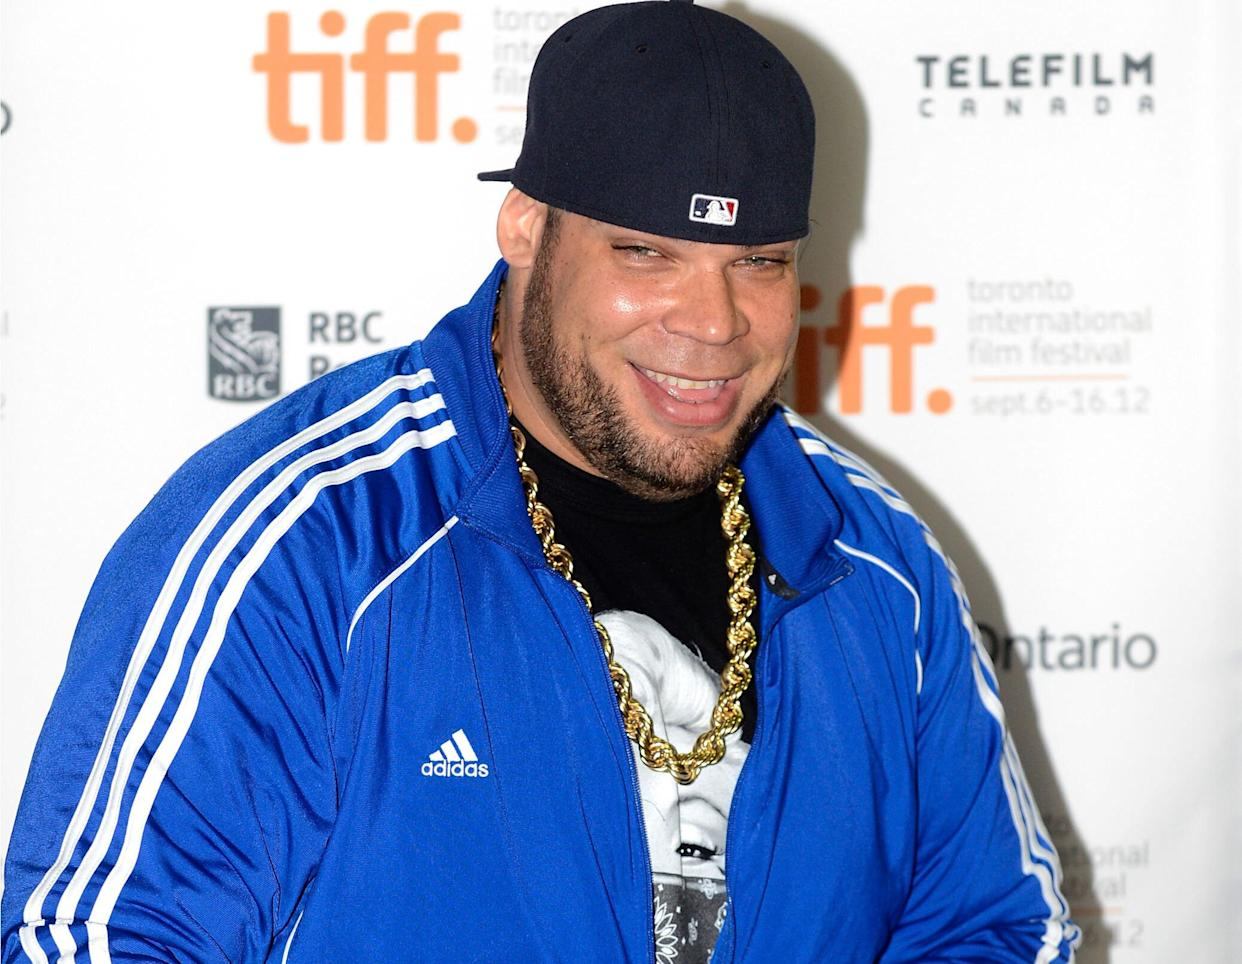 Tyrus set several inappropriate texts to his co-host between November 2018 and January 2019. (Photo: Aaron Harris via Getty Images)